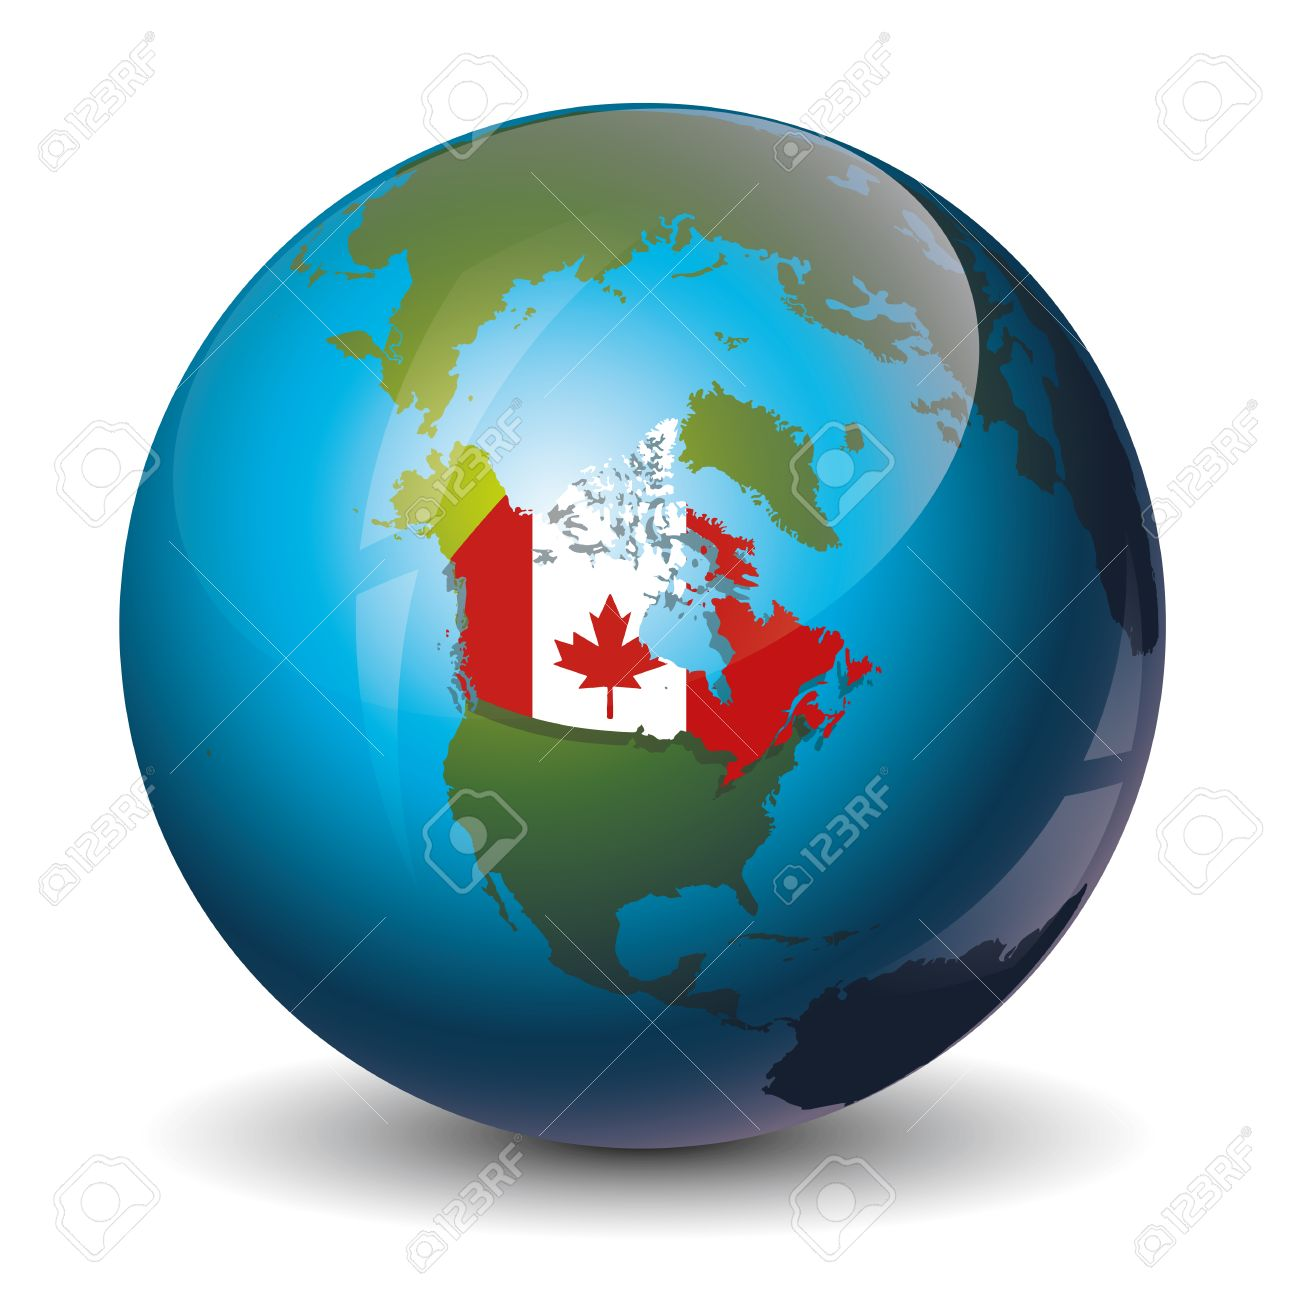 Map Of Canada On Globe.Icon Of The Canada On Globe World Map Royalty Free Cliparts Vectors